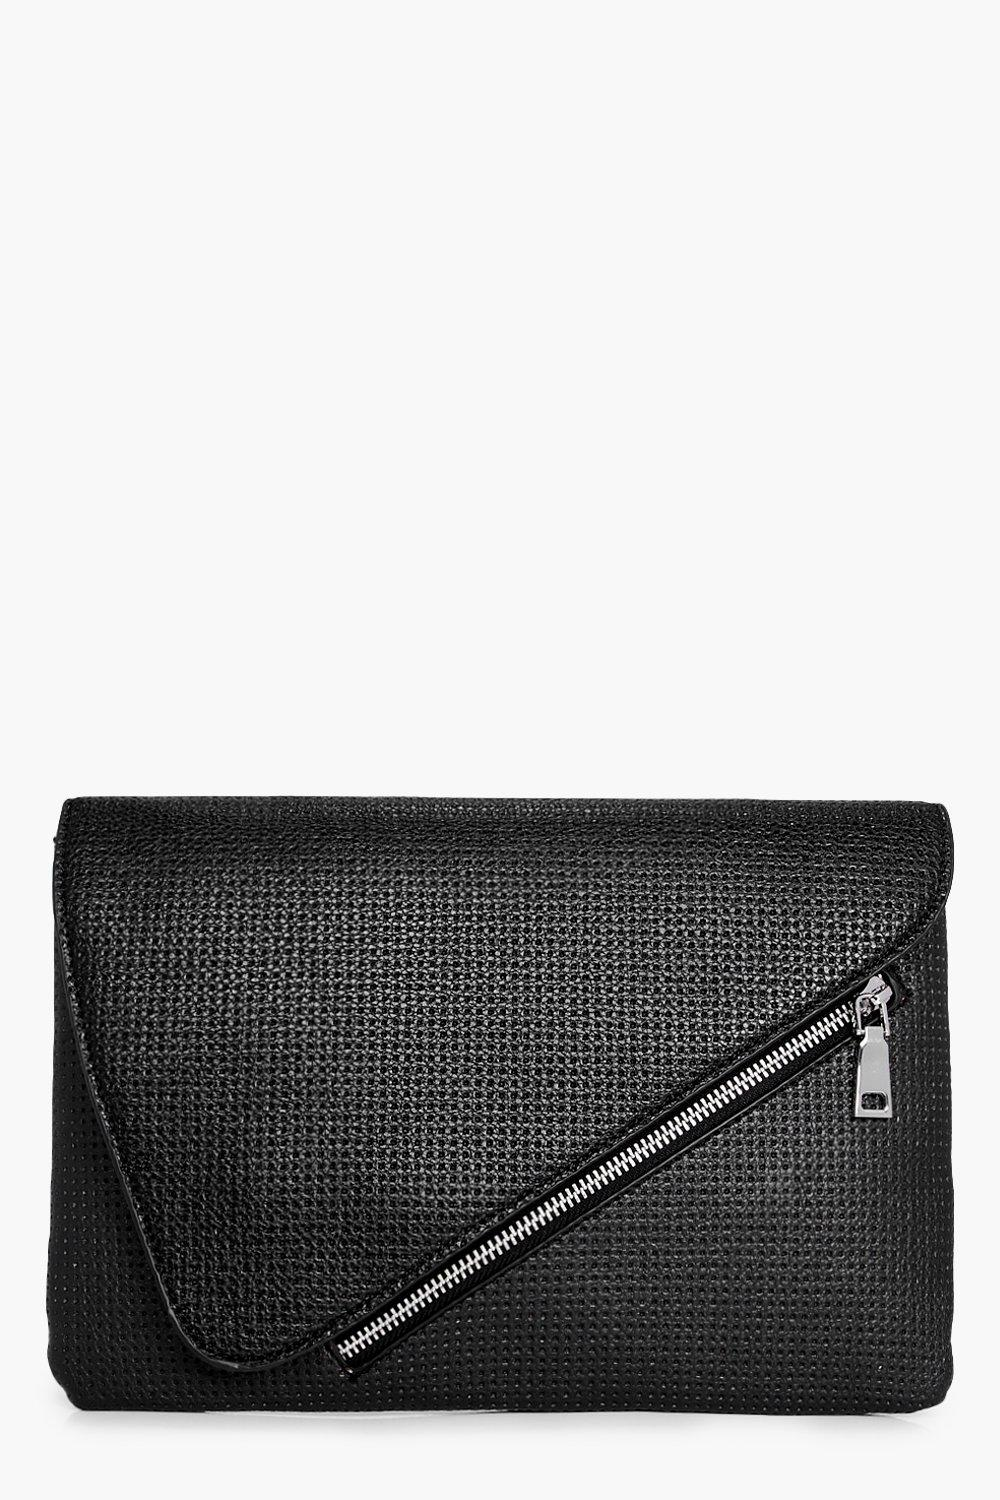 Perforated Clutch - black - Ivy Perforated Clutch